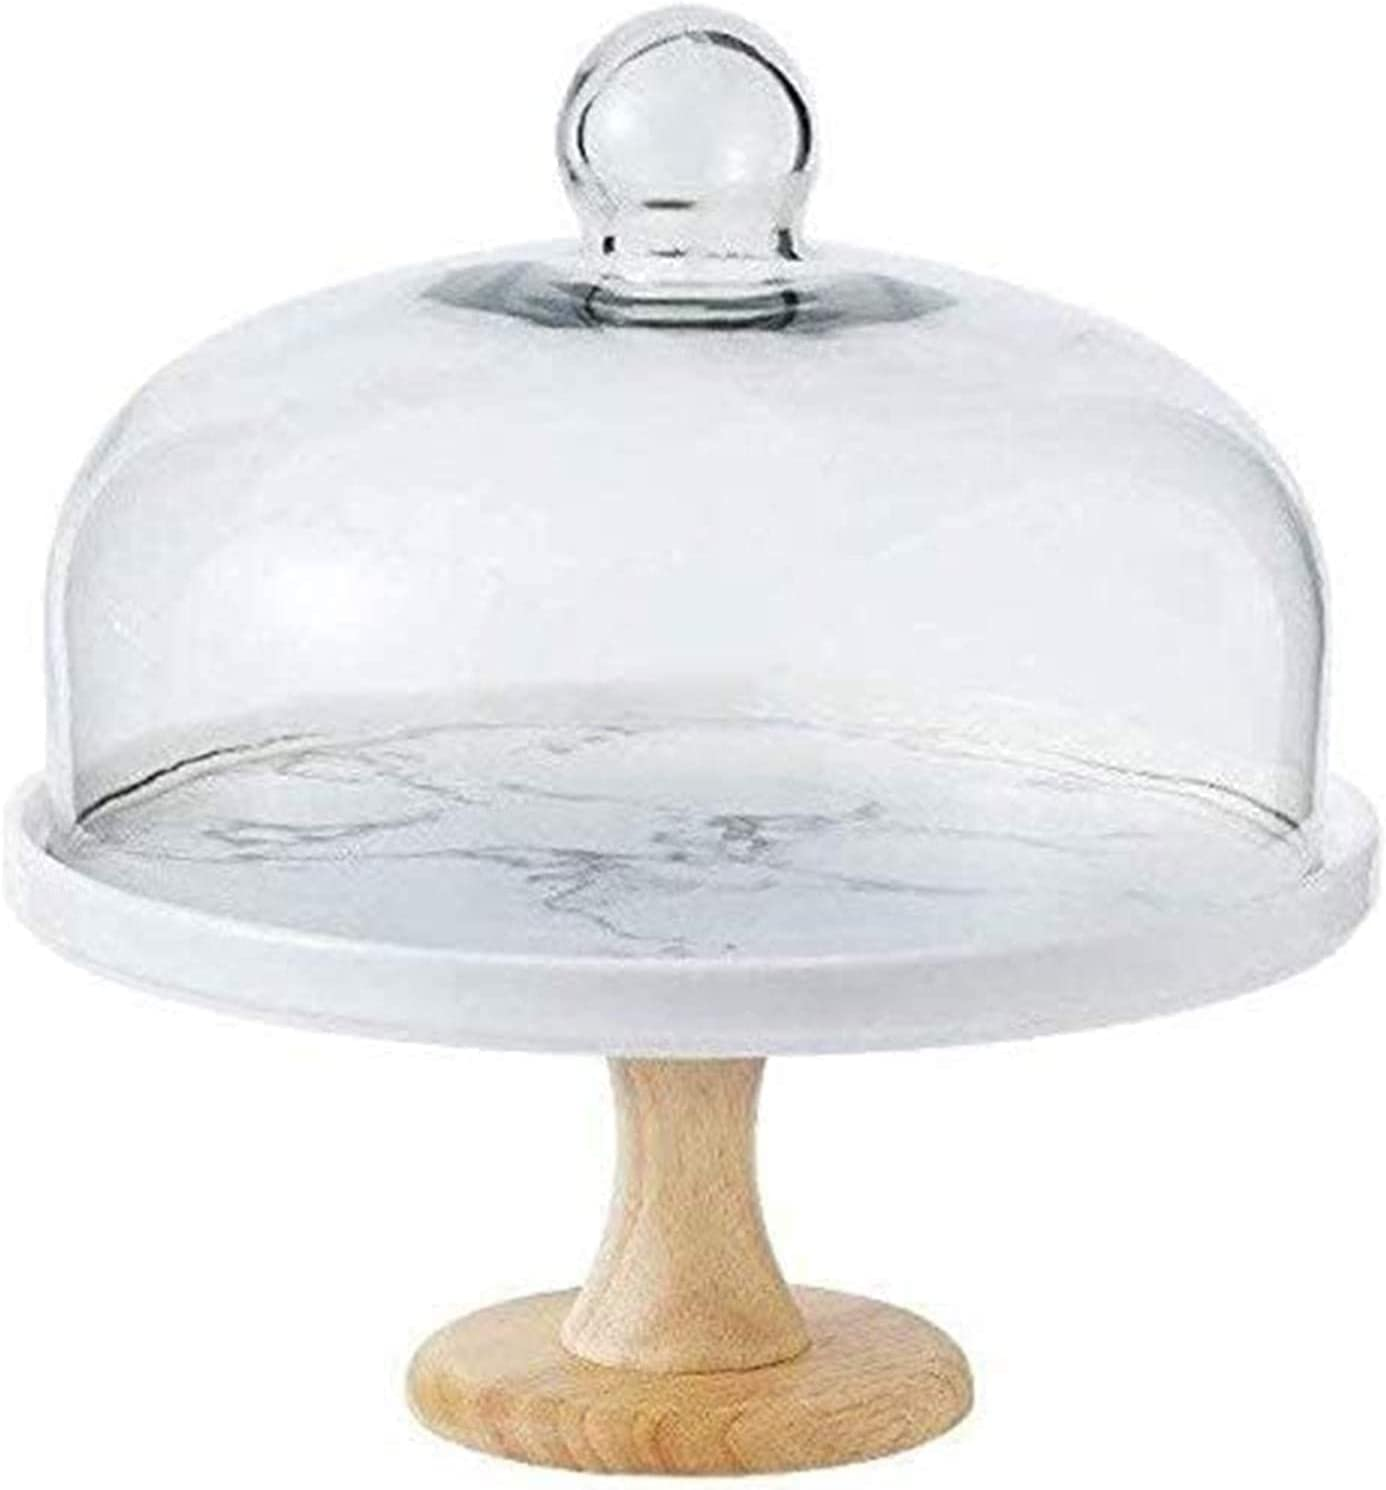 Ranking TOP6 Cake Stand with Dome Multi-Functional Fresh Keep cheap Holder Pa